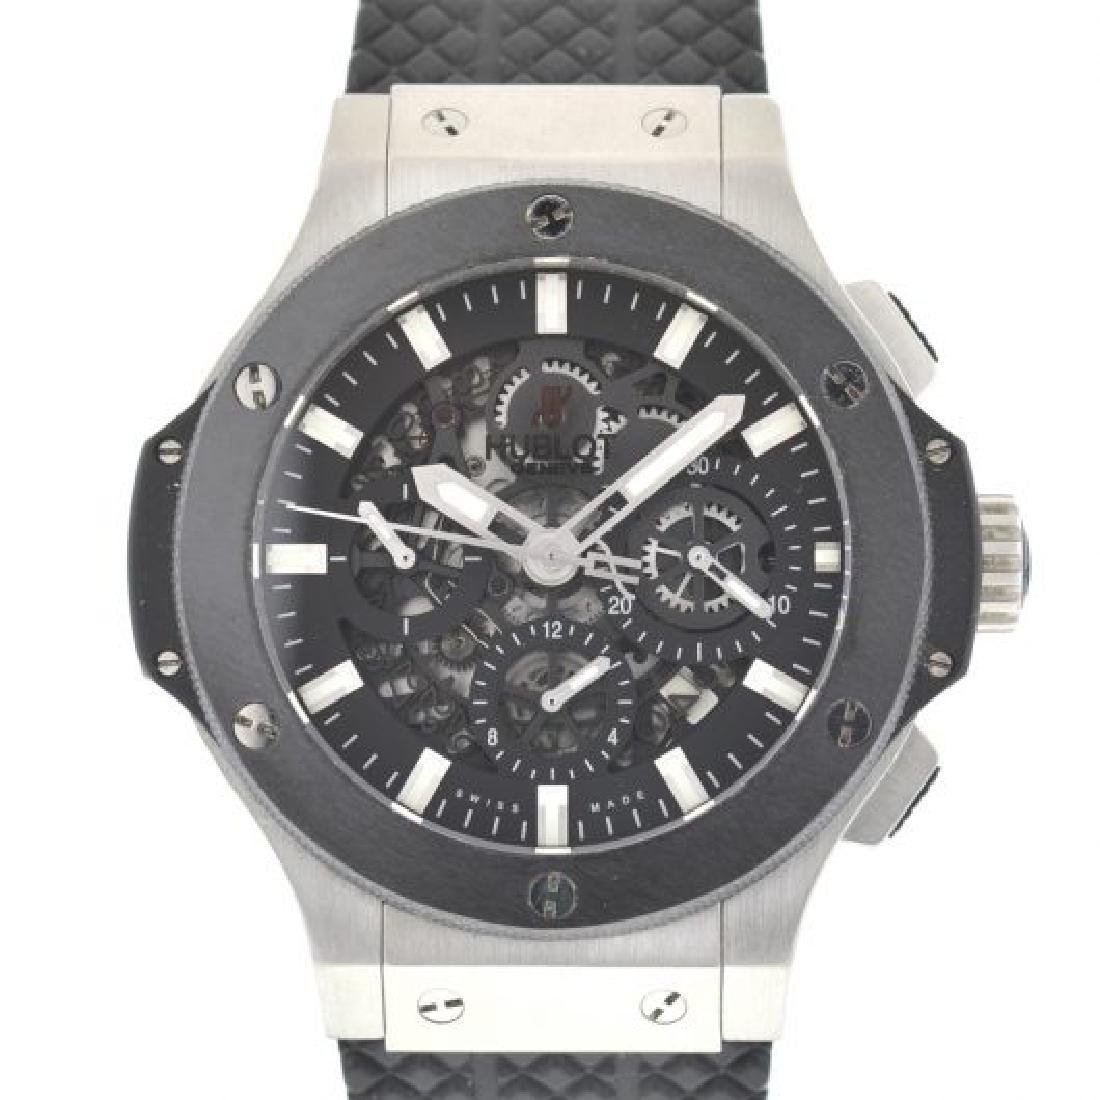 Hublot Big Bang Aero Bang Watch